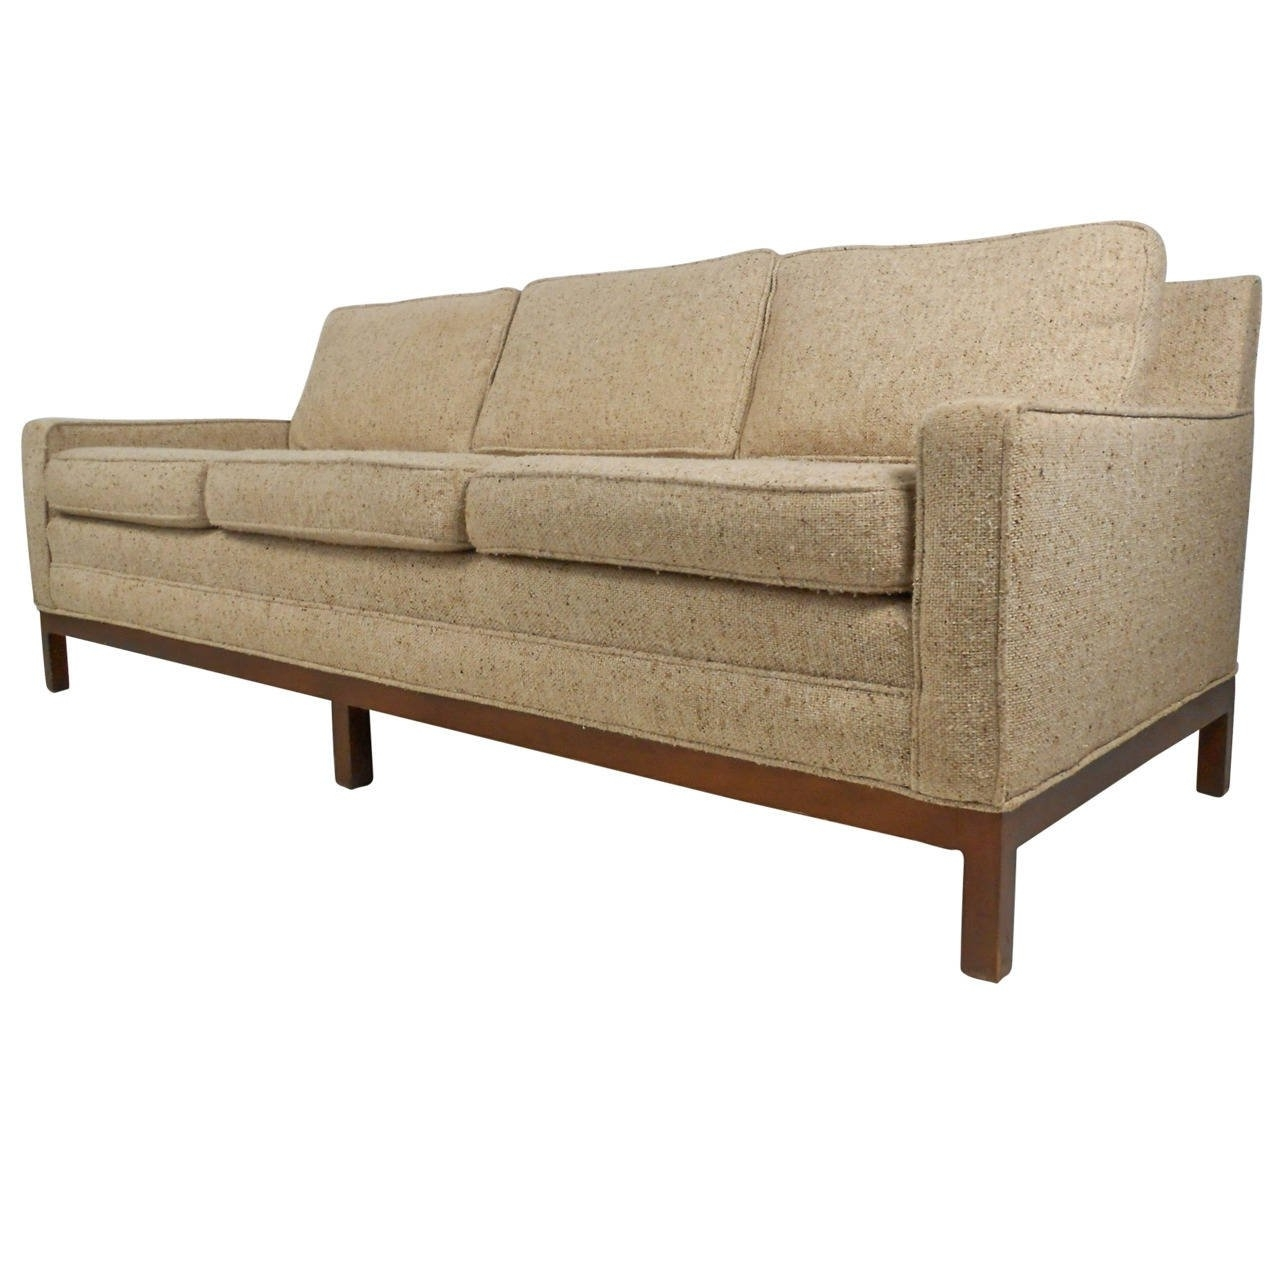 Recent Florence Sofas And Loveseats Intended For Vintage Modern Sofa After Florence Knoll For Sale At 1Stdibs (View 13 of 20)